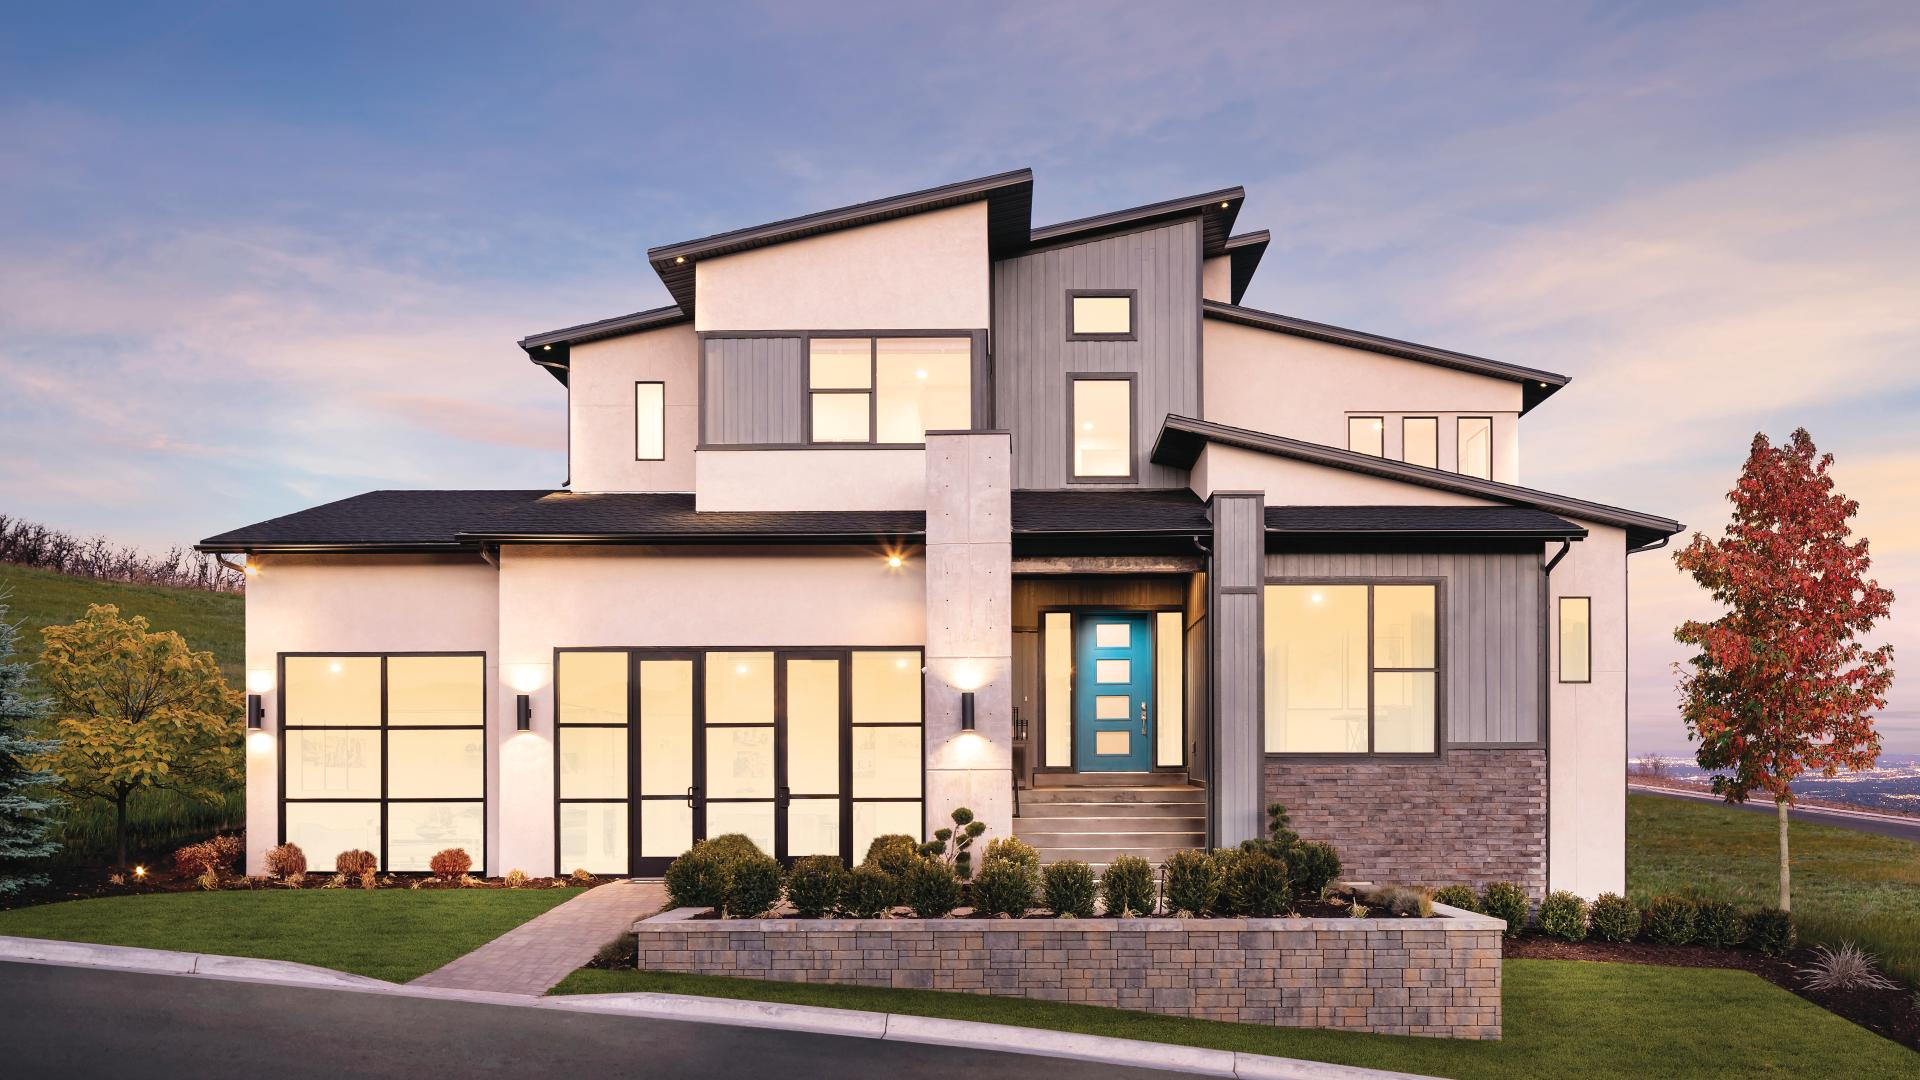 Diverse architectural styles to choose from